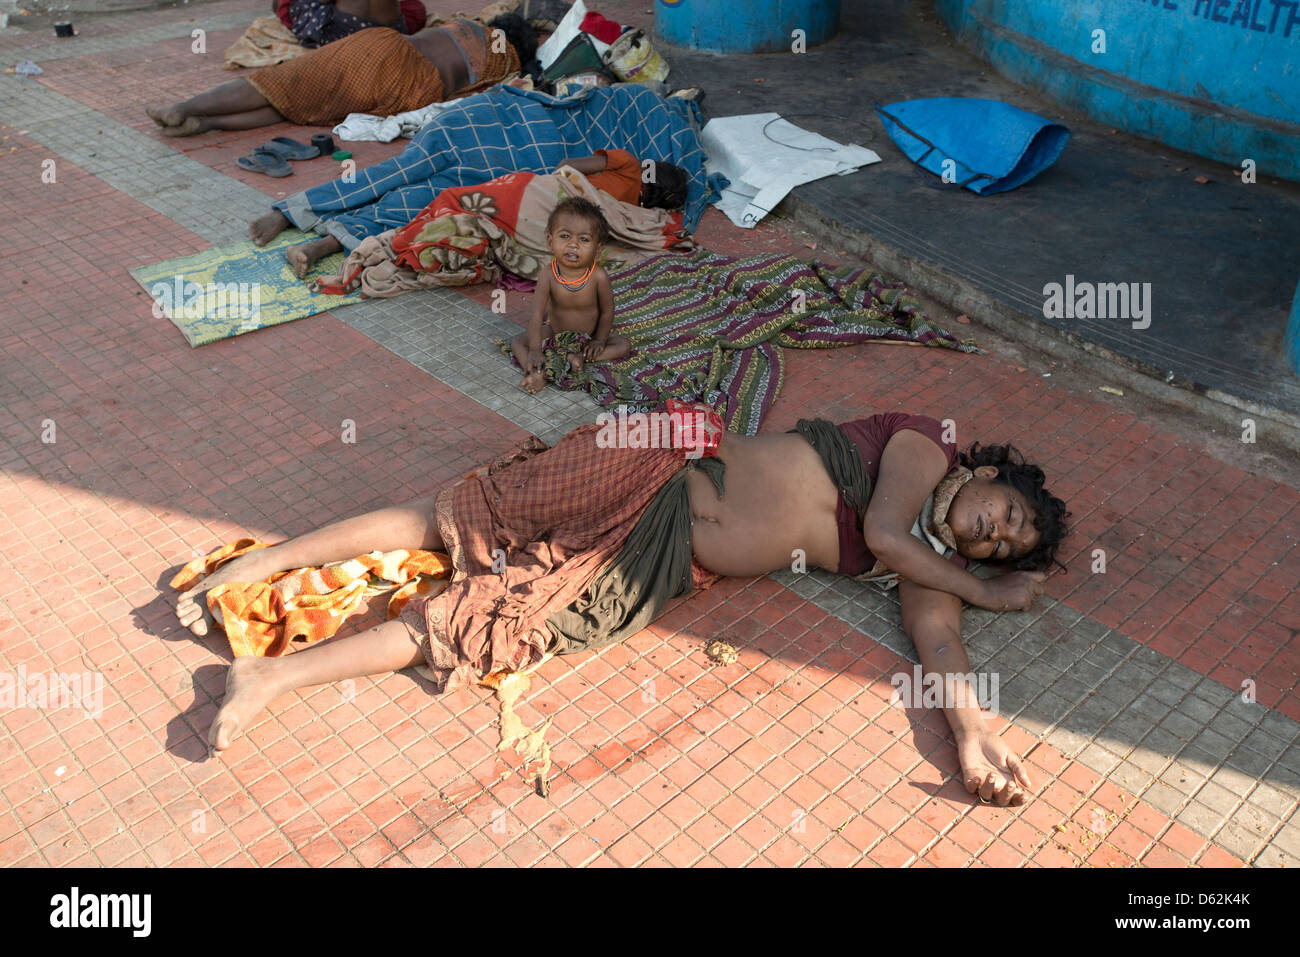 A child weeps while his destitute mother sleeps in Chennai, Tamil Nadu, India - Stock Image